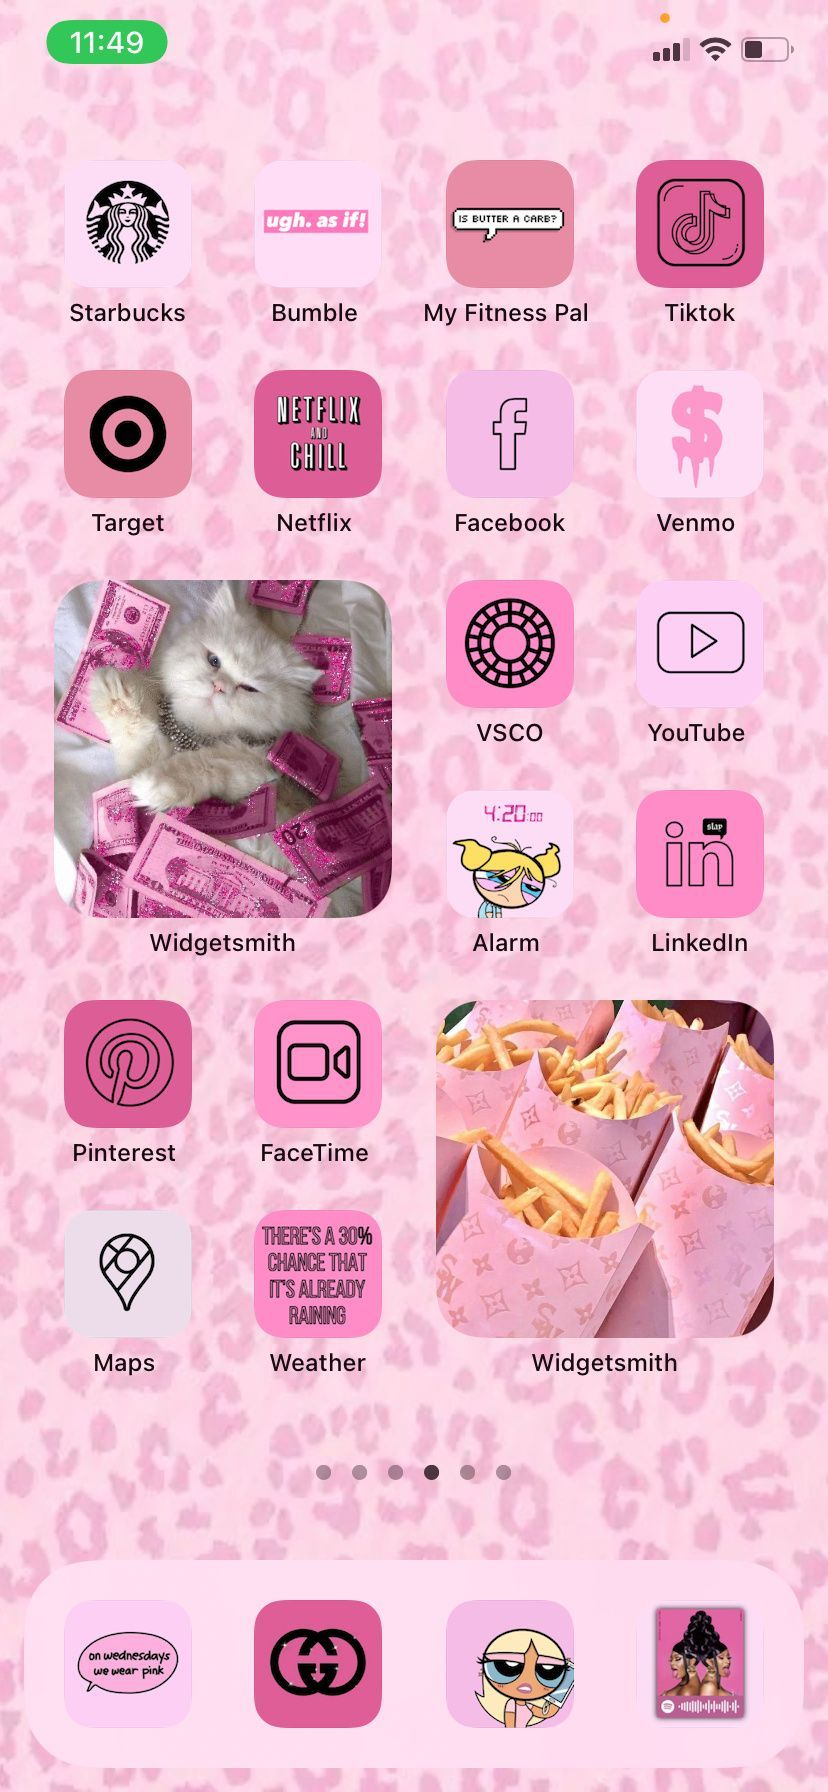 Boujee Pink Aesthetic Iphone Ios 14 App Icons Iphone Home Screen Widgets Pink Ios 14 Icons Ios 14 Shortcuts Pink Wallpaper Widgetsmith In 2021 Homescreen App Icon Pink Aesthetic